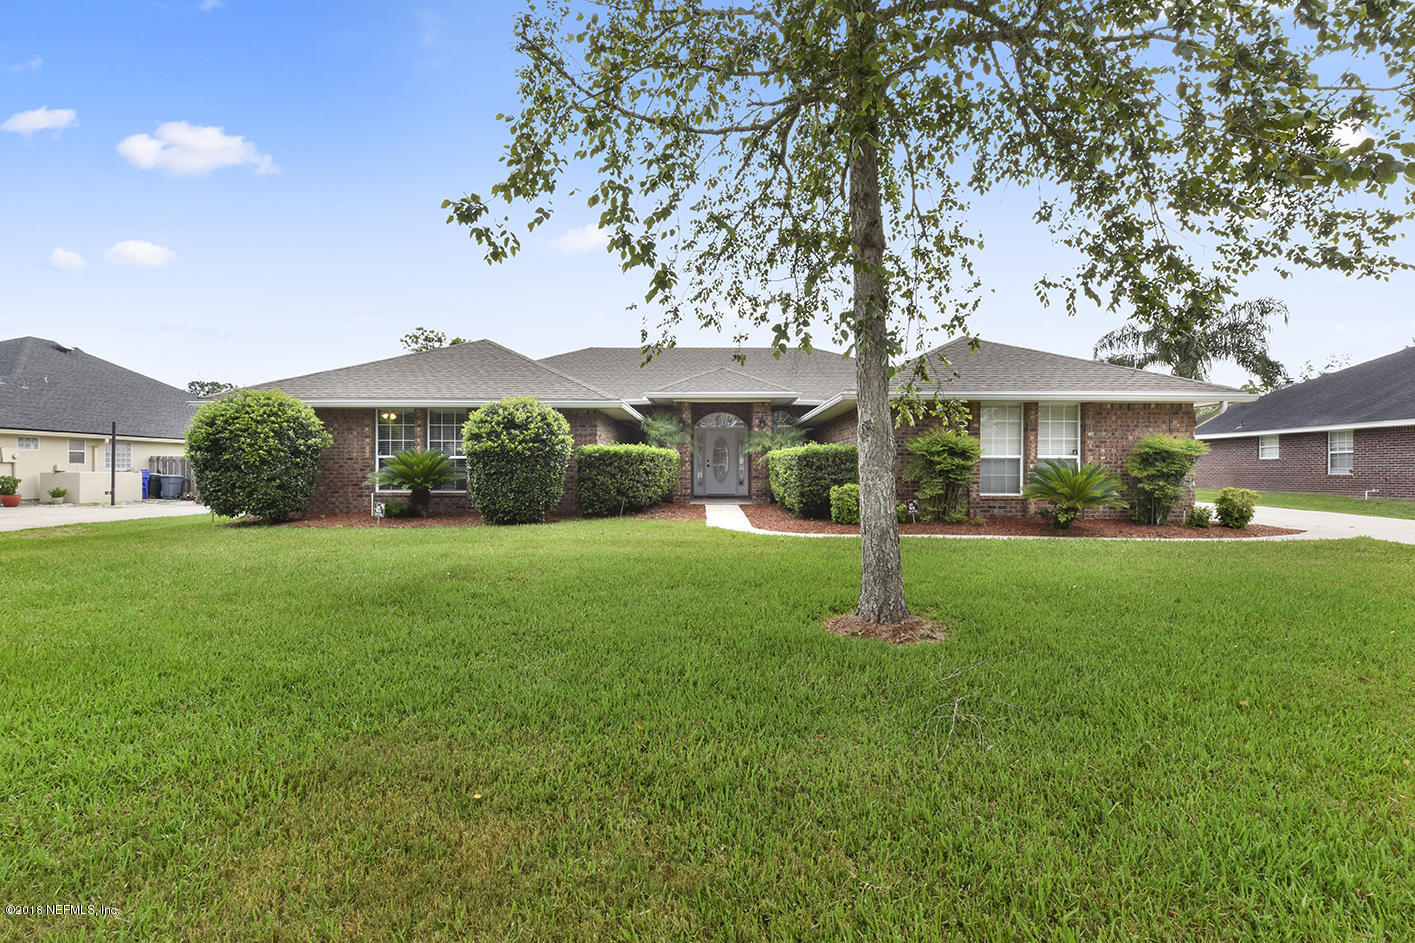 1121  HIDEAWAY DR N, Saint Johns in ST. JOHNS County, FL 32259 Home for Sale